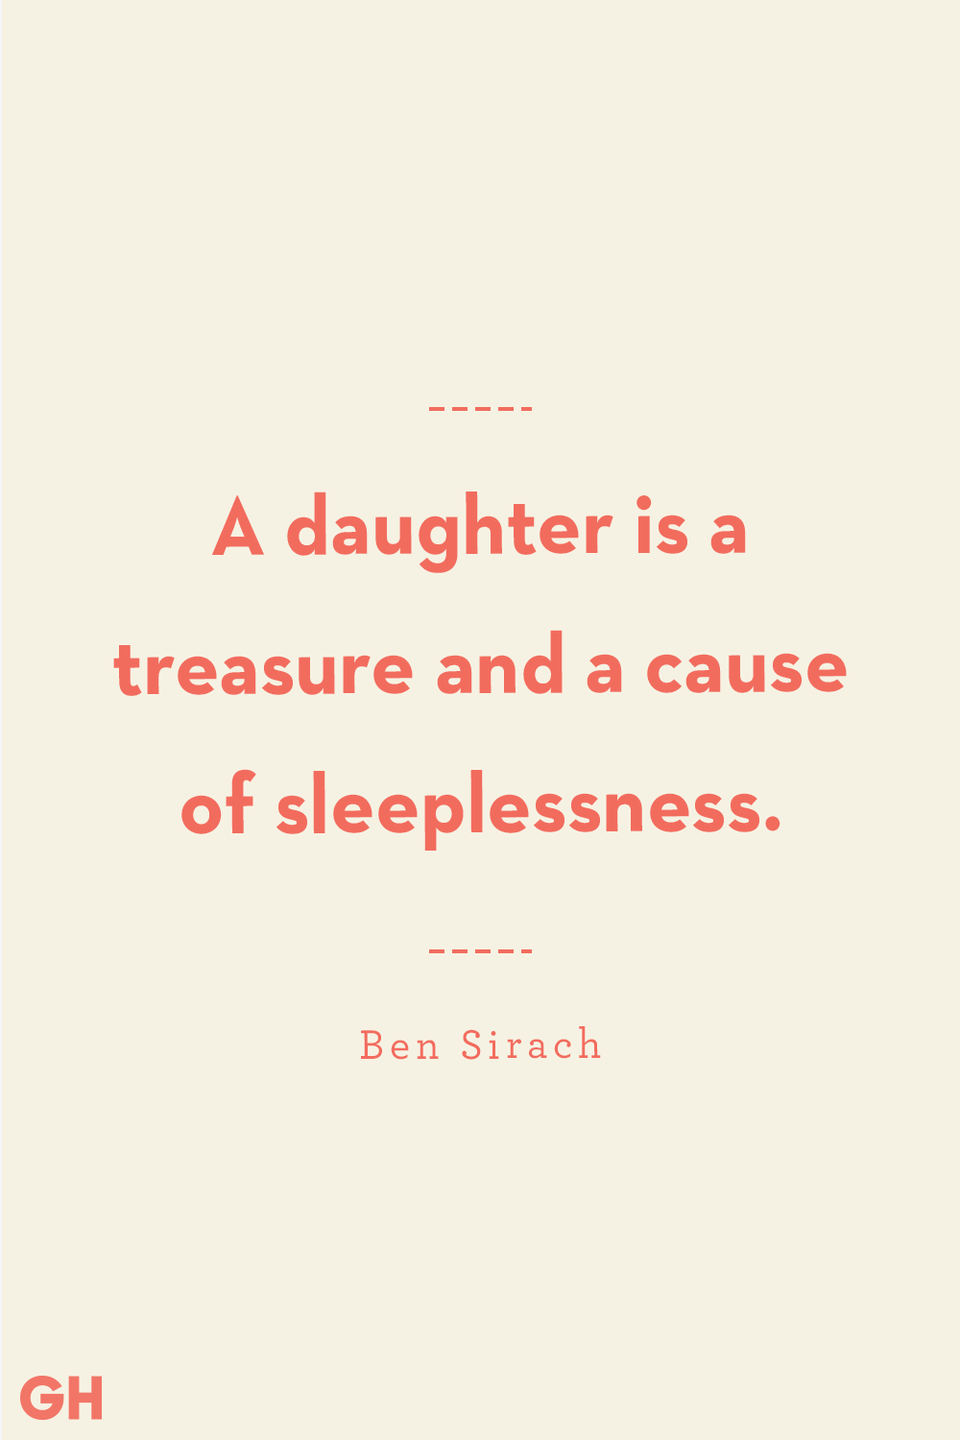 <p>A daughter is a treasure and a cause of sleeplessness.</p>